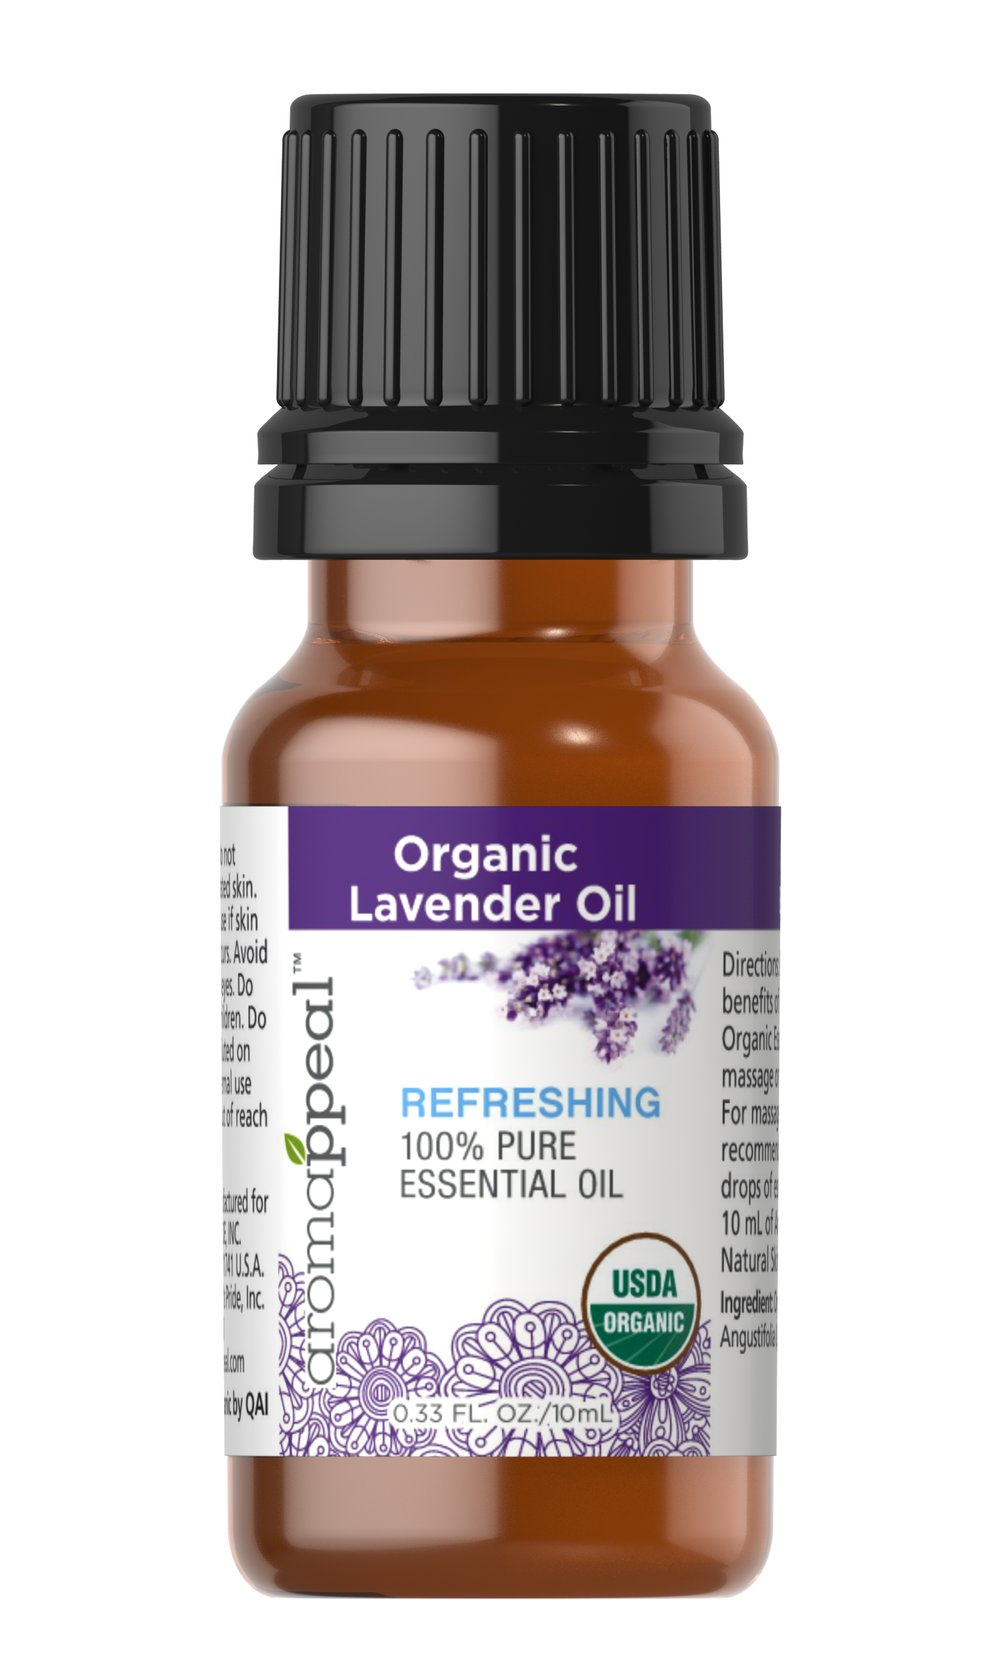 Organic Lavender Oil <p><strong>NEW! Organic Aromappeal - USDA</strong></p><p>The art of aromatherapy can be traced back to the great ancient civilizations of Egypt, Greece and Rome where essential oils were valued for their many uses. Tranquility and serenity, meditation, circulation, overall soothing and comforting – especially when used in massage.</p><ul><li>    Traditional Uses: Tranquility and serenity, meditation,